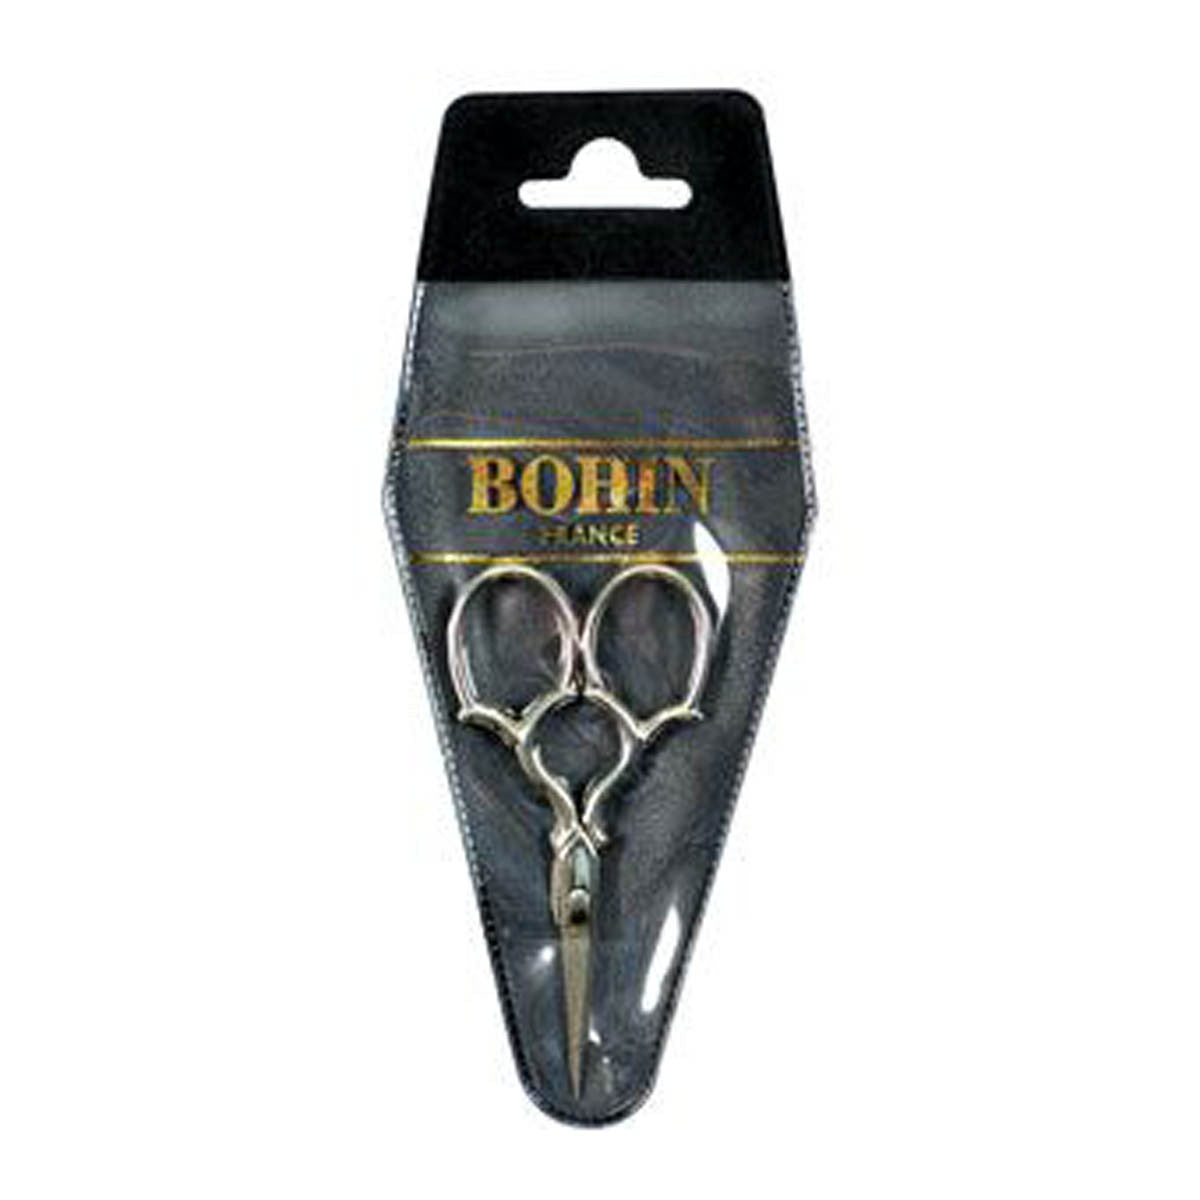 BOHIN EMBROIDERY SCISSORS With Large Handle -